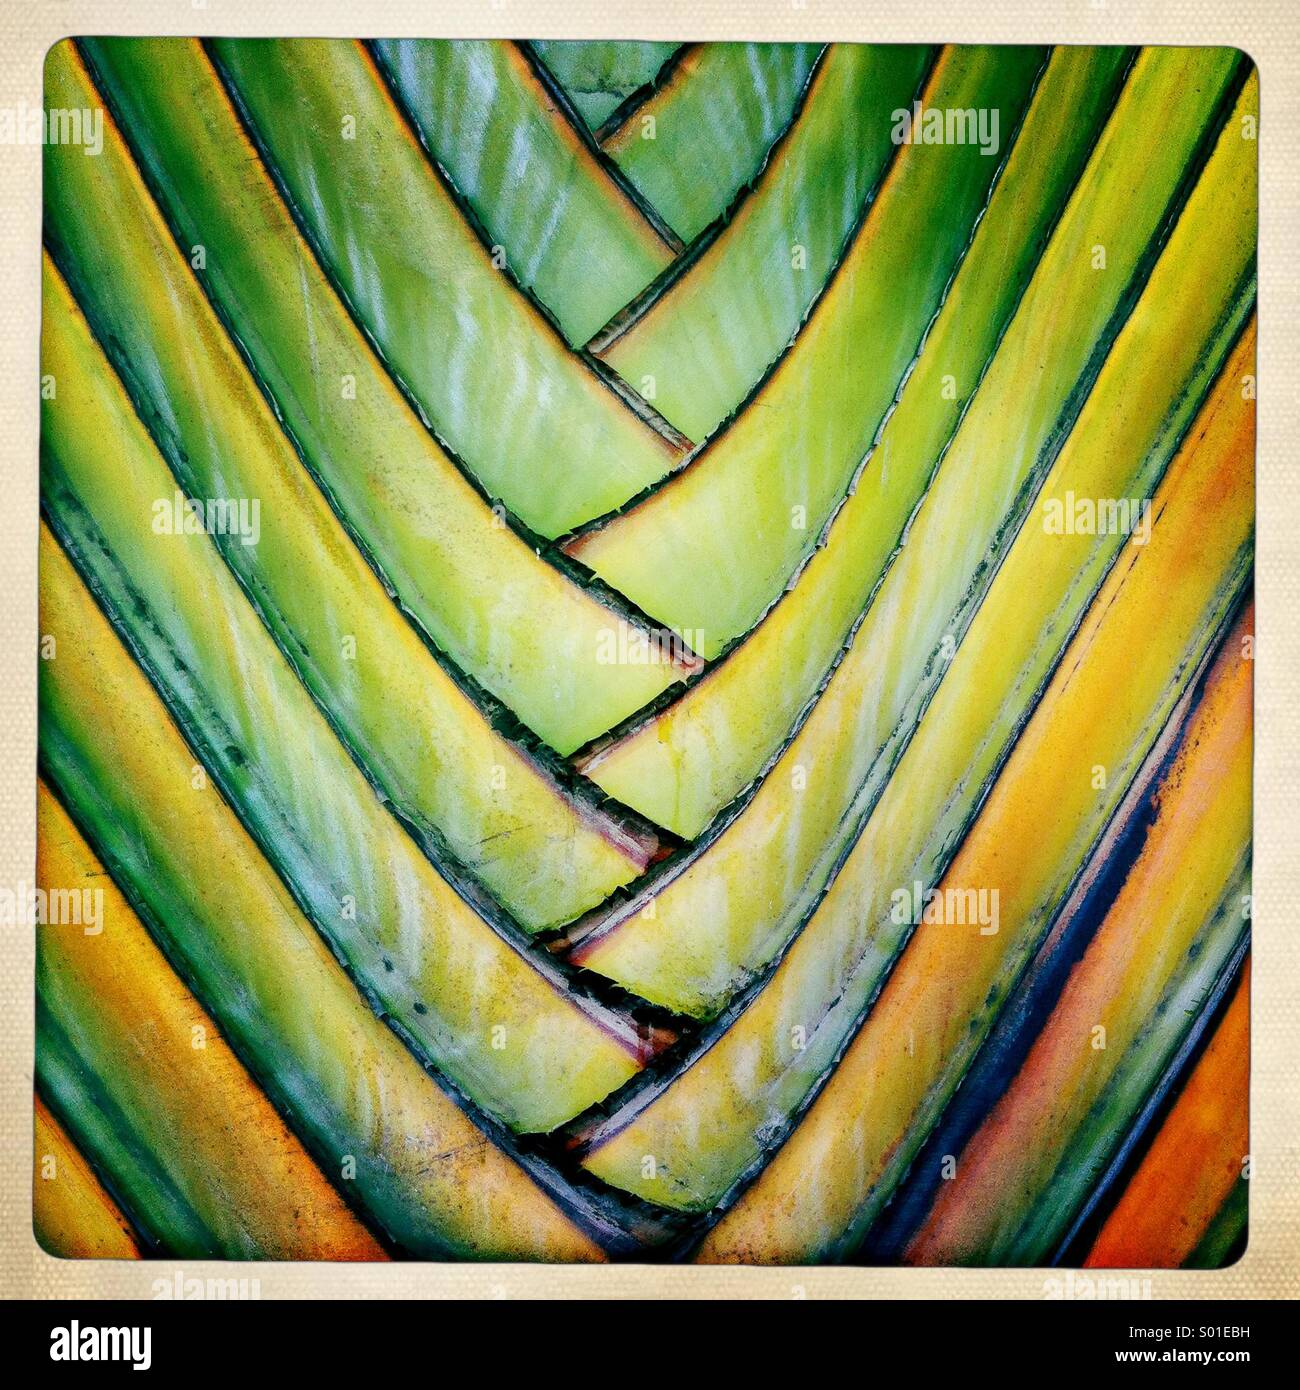 Abstract colorful details of an ornamental palm. - Stock Image